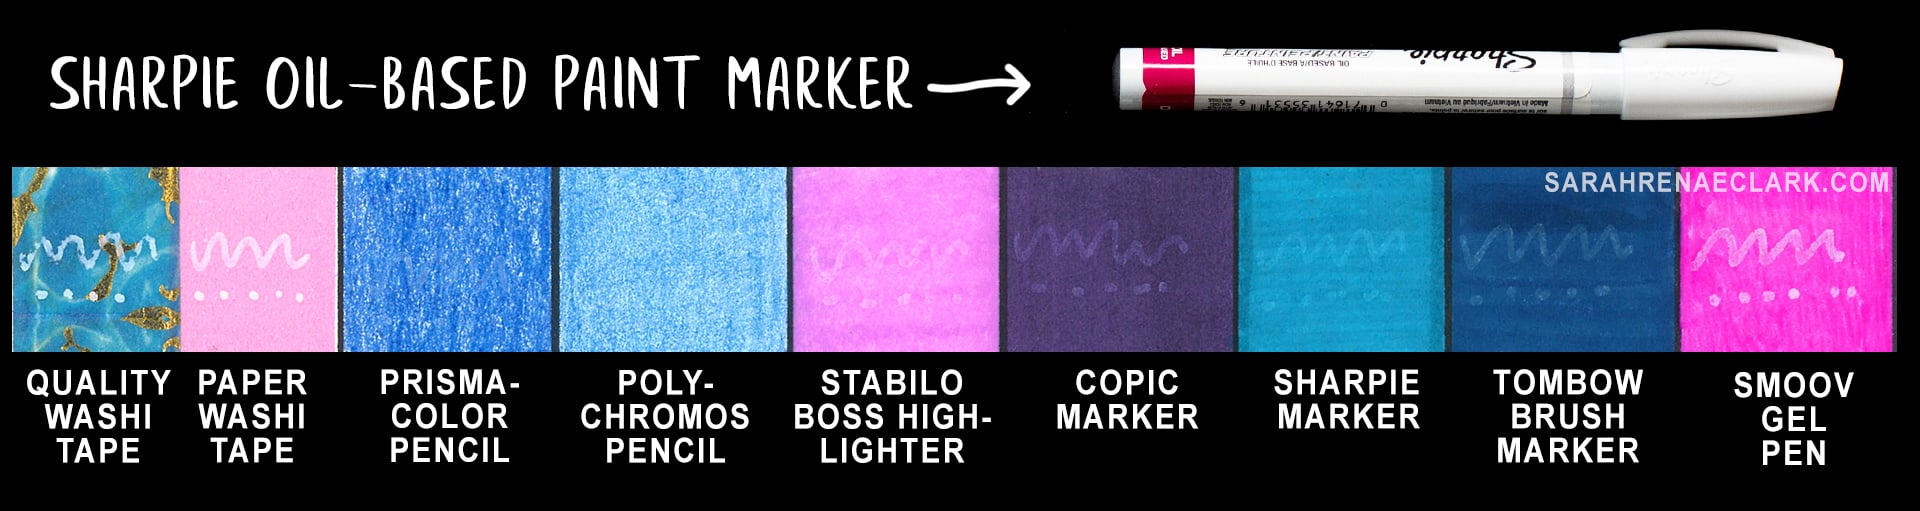 Sharpie Oil-Based Paint Marker Review